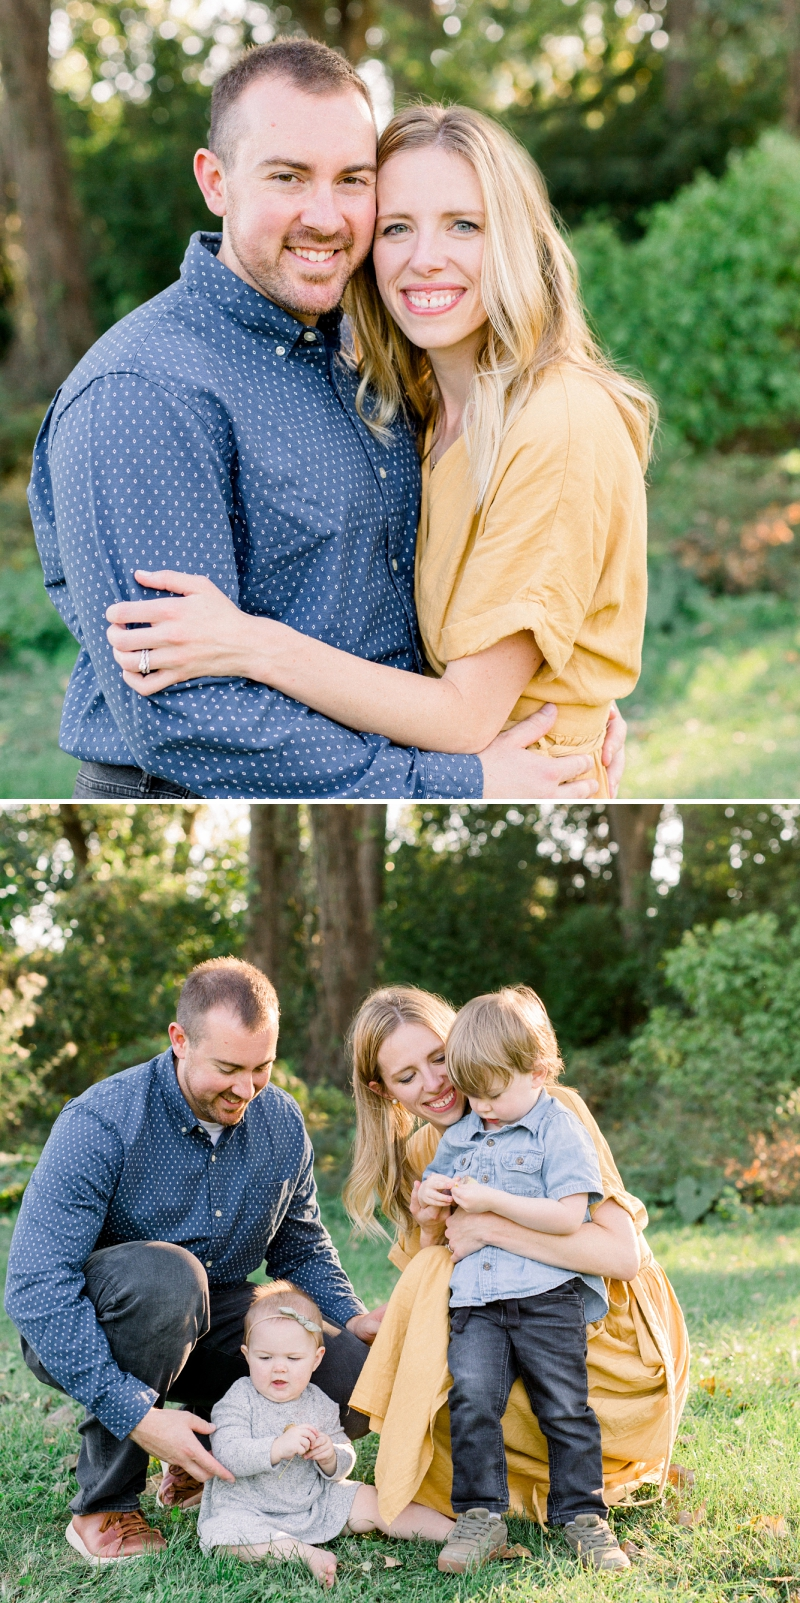 PHOTOS BY KRISTEN DYER PHOTOGRAPHY